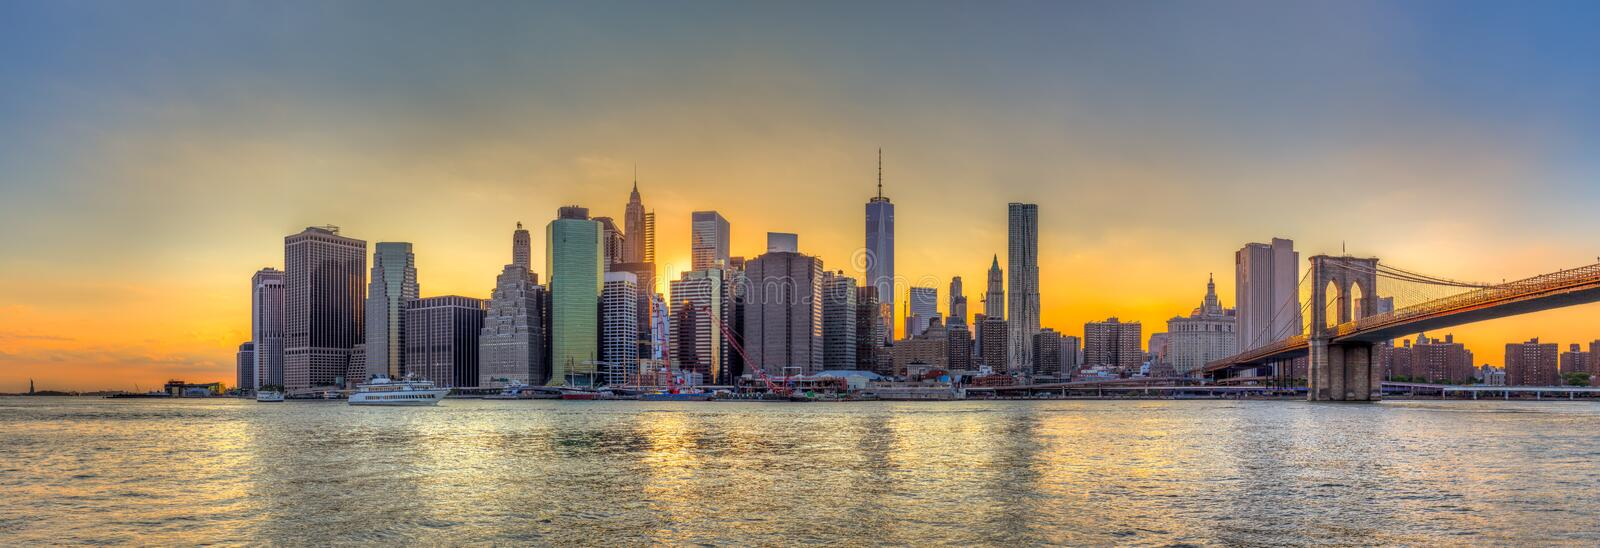 Panorama view of New York City downtown skyline and Brooklyn bridge at sunset royalty free stock images